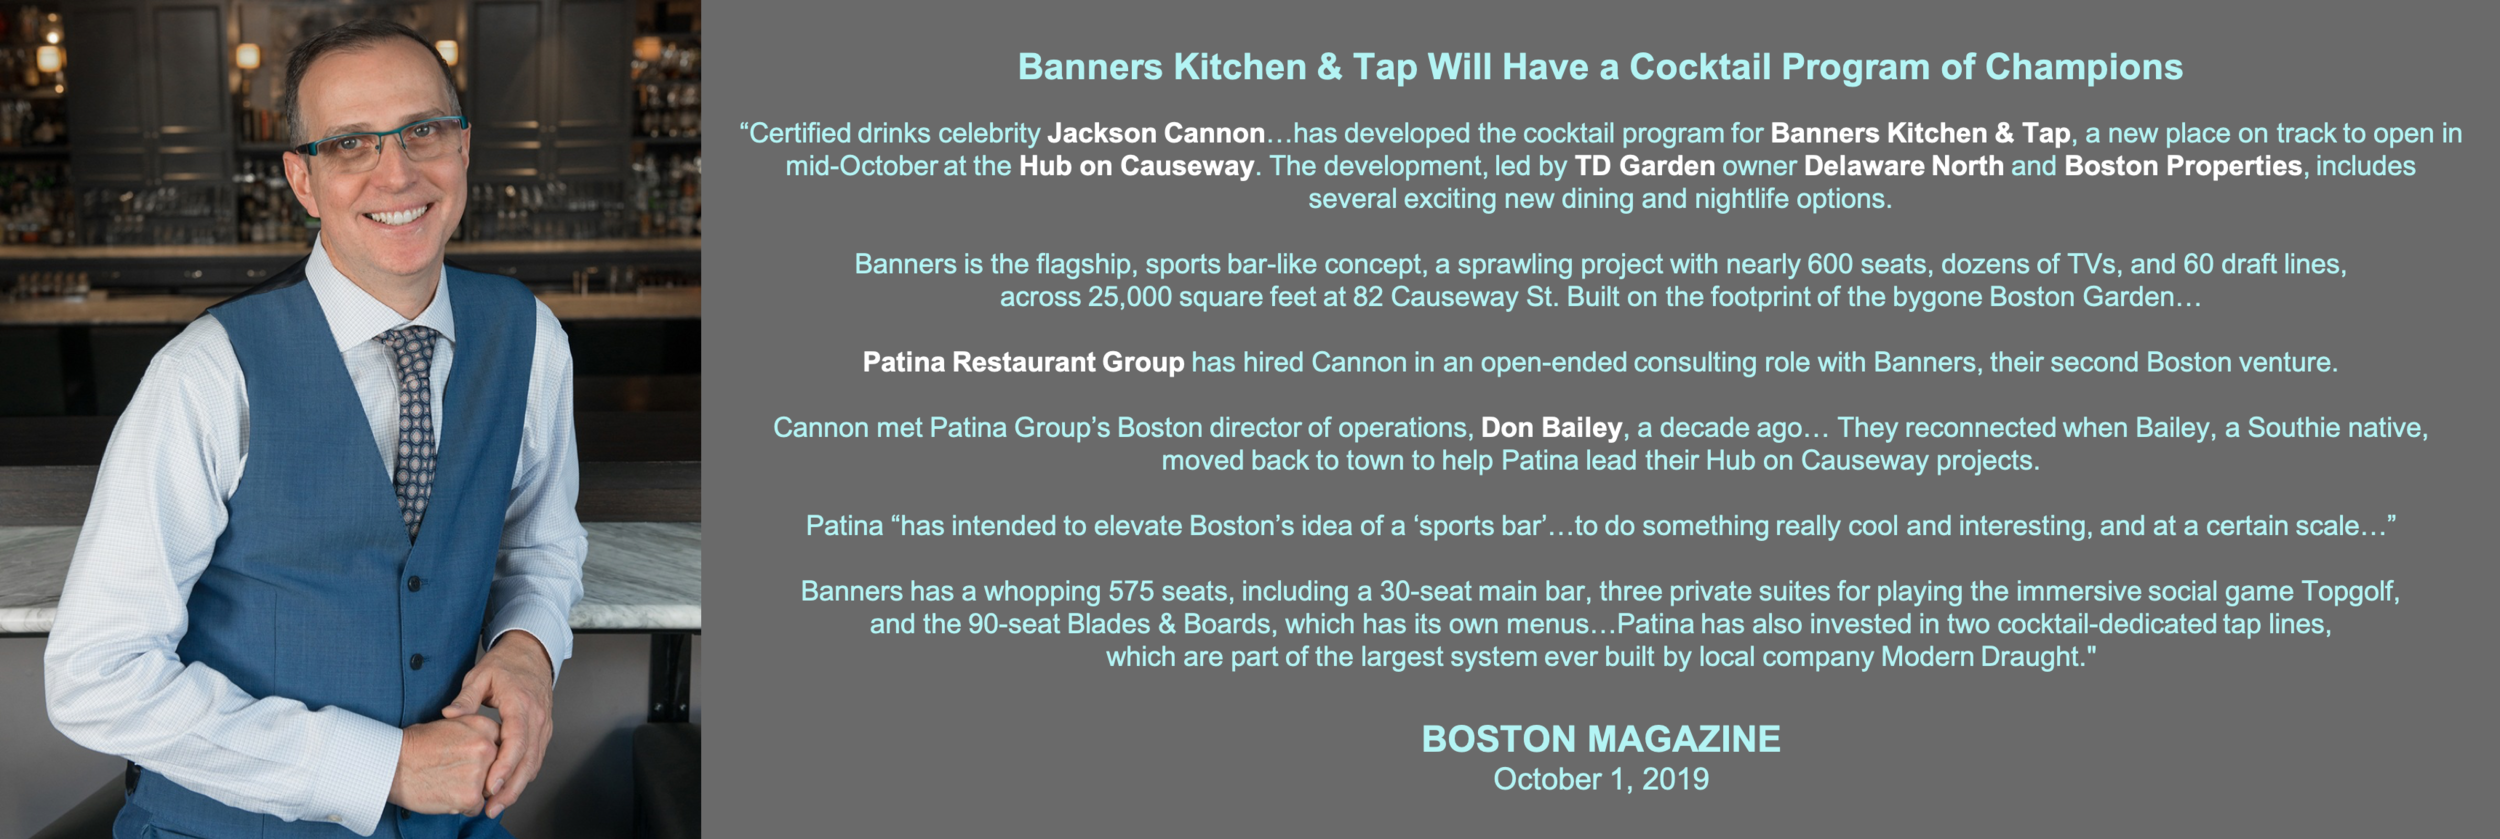 Boston Magazine Oct 1 2019 Banners Kitchen.png